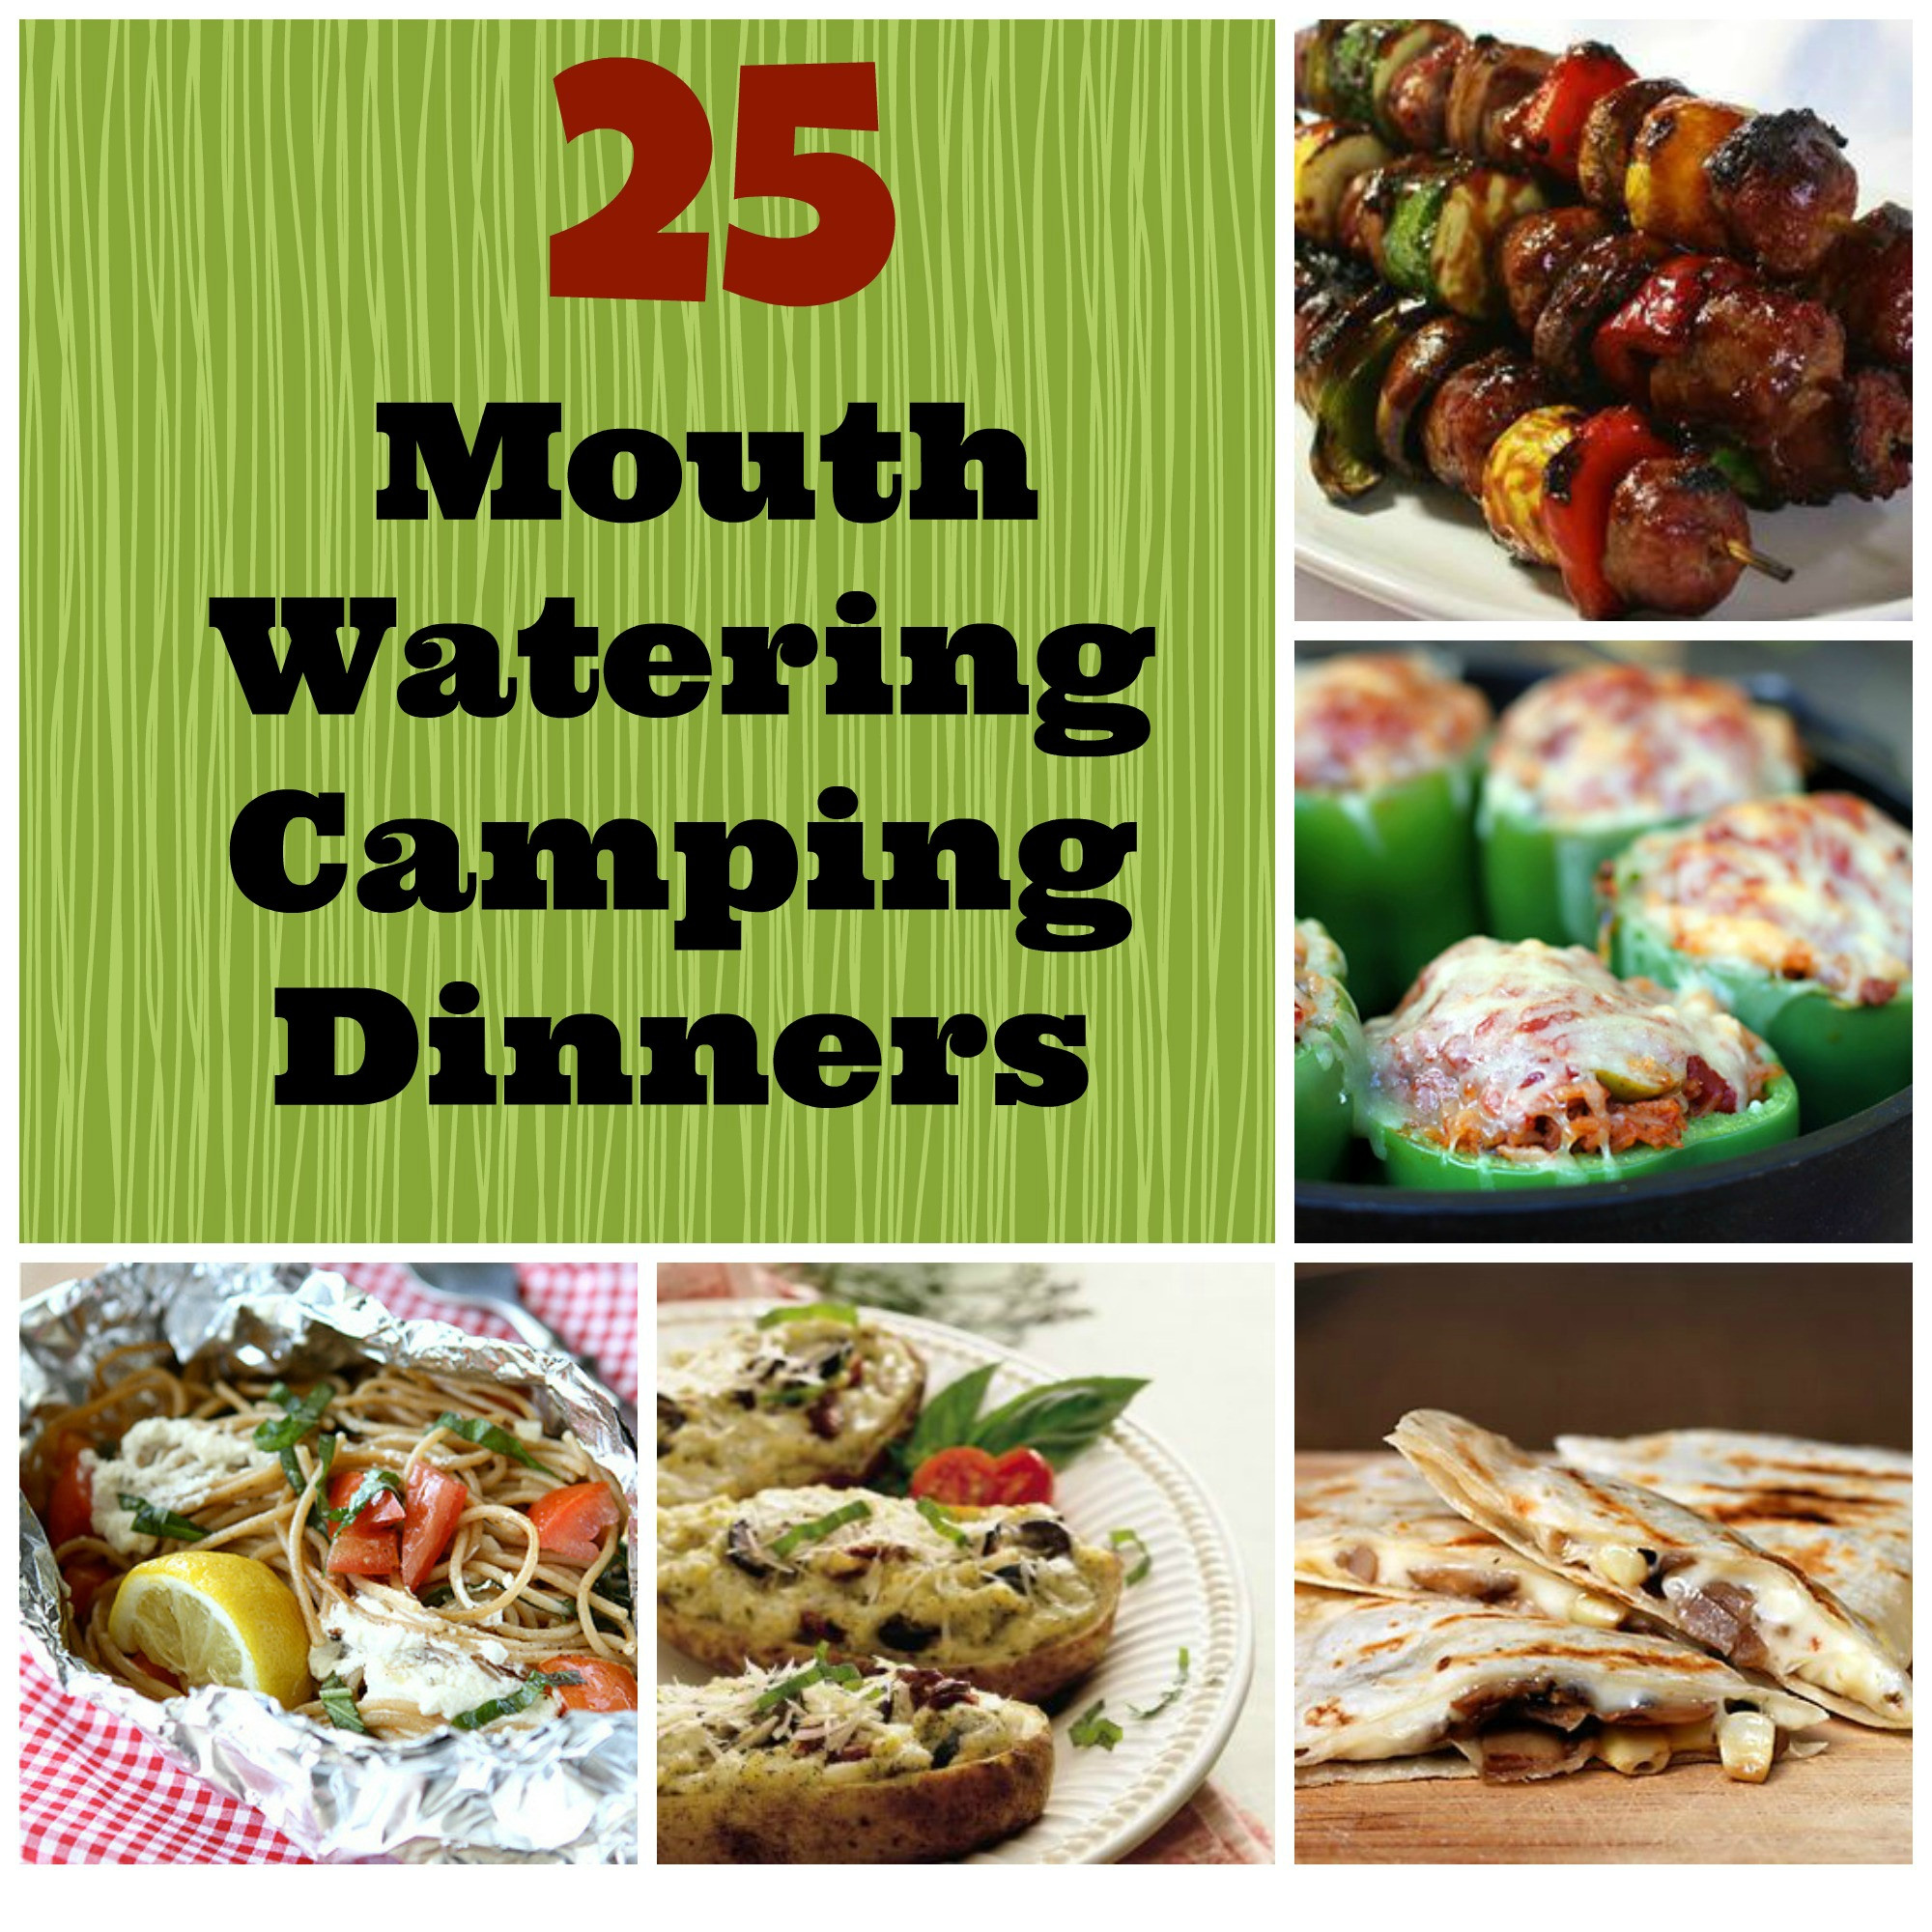 Dinner Ideas For Camping  25 Mouth Watering Camping Dinners Bring The Kids